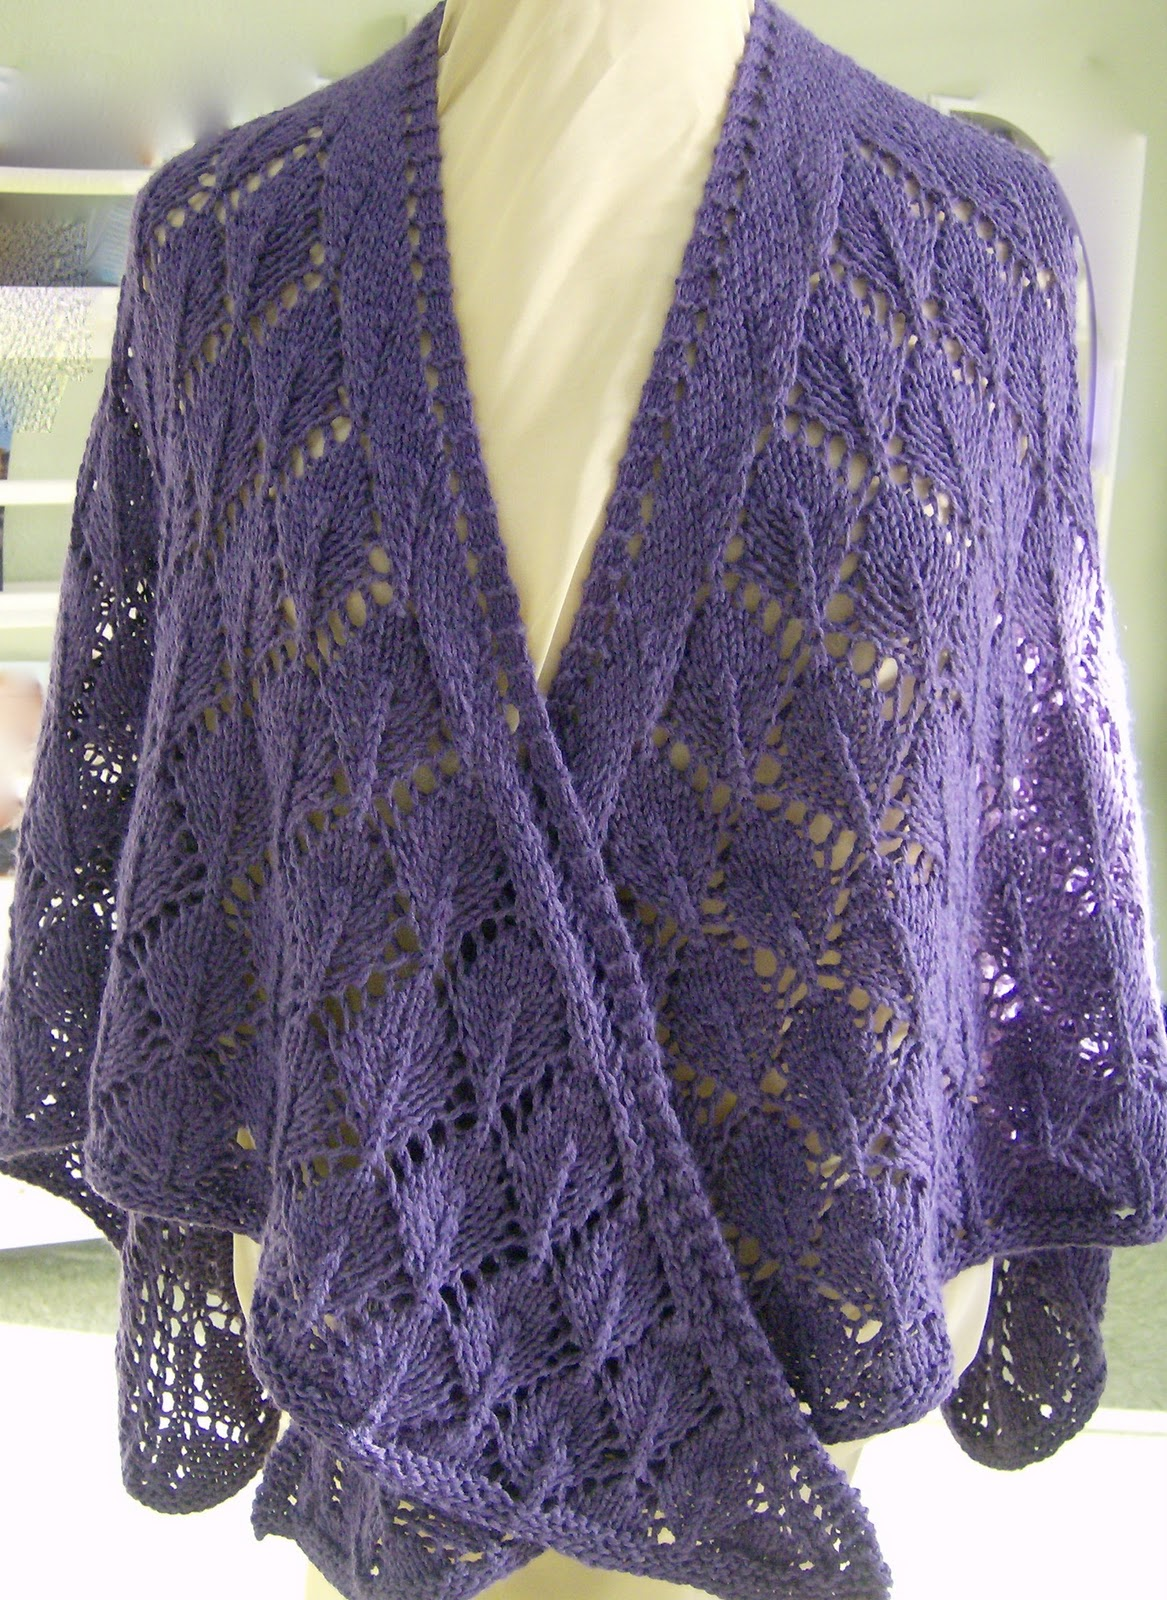 Knitted Prayer Shawl Patterns : SunFunLiving Knits: Oak Leaves Shawl Pattern (FREE)